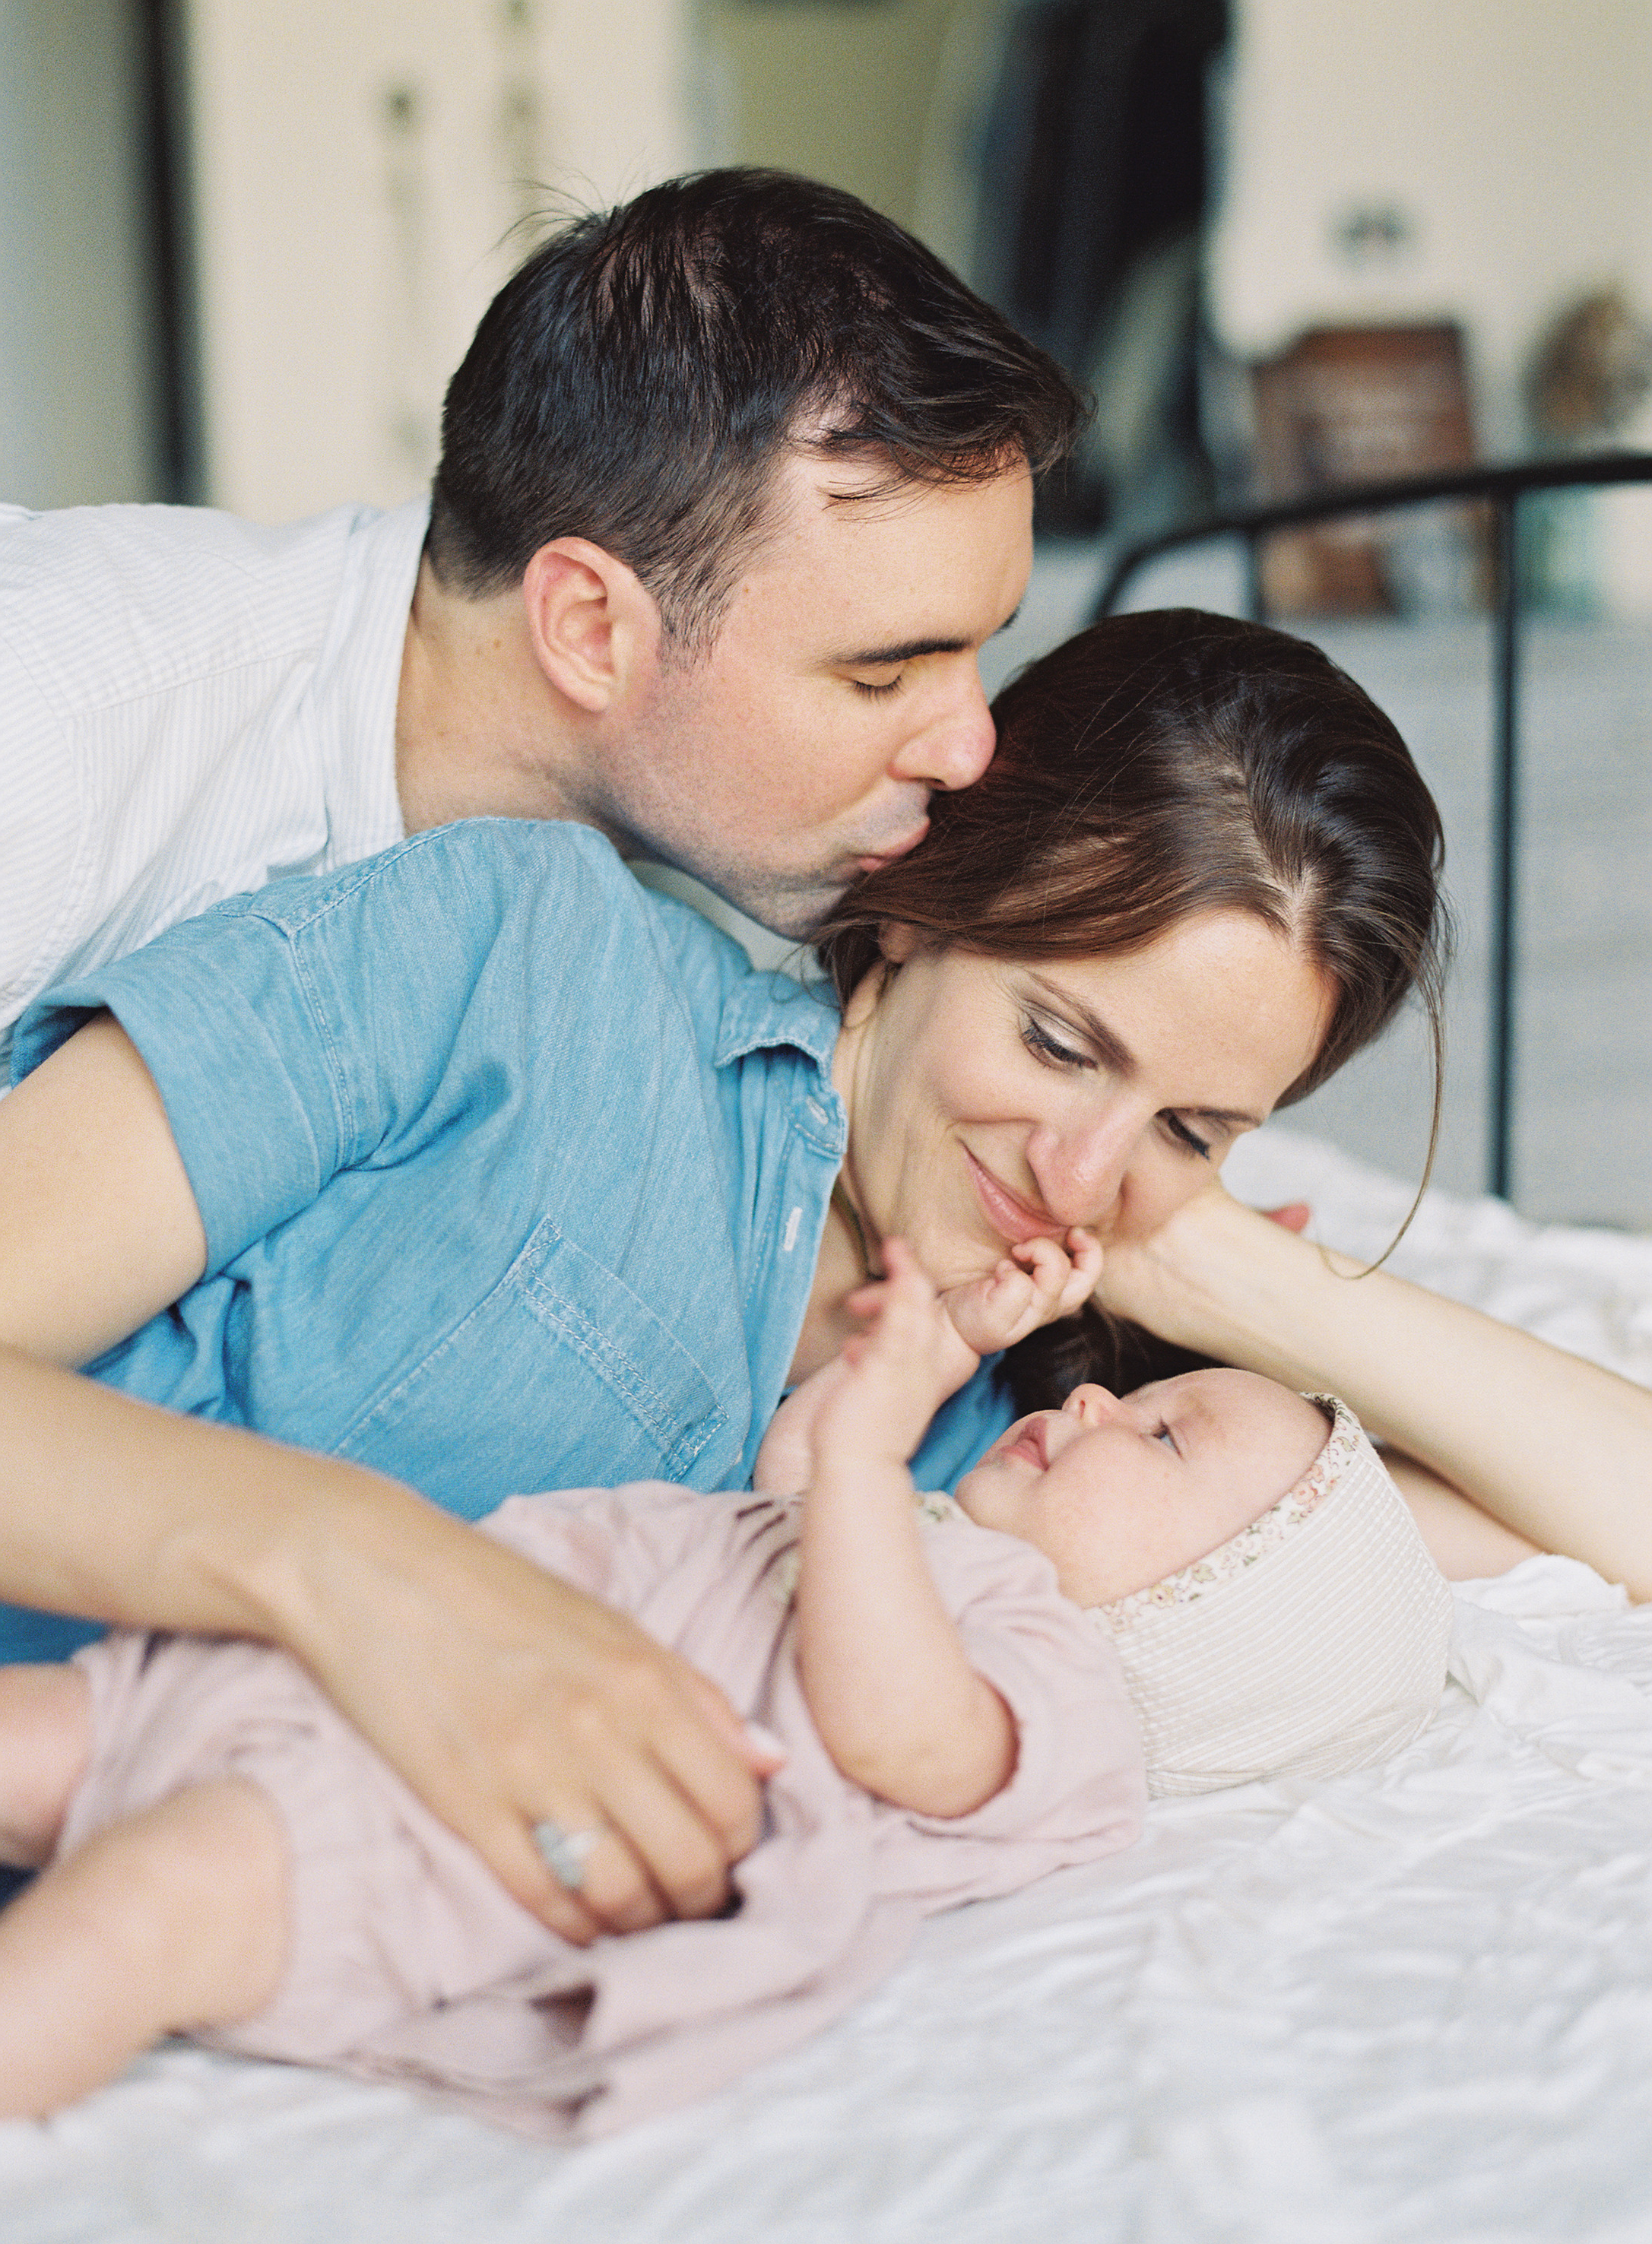 Meghan Mehan Photography - San Francisco Newborn and Family Photographer 042.jpg